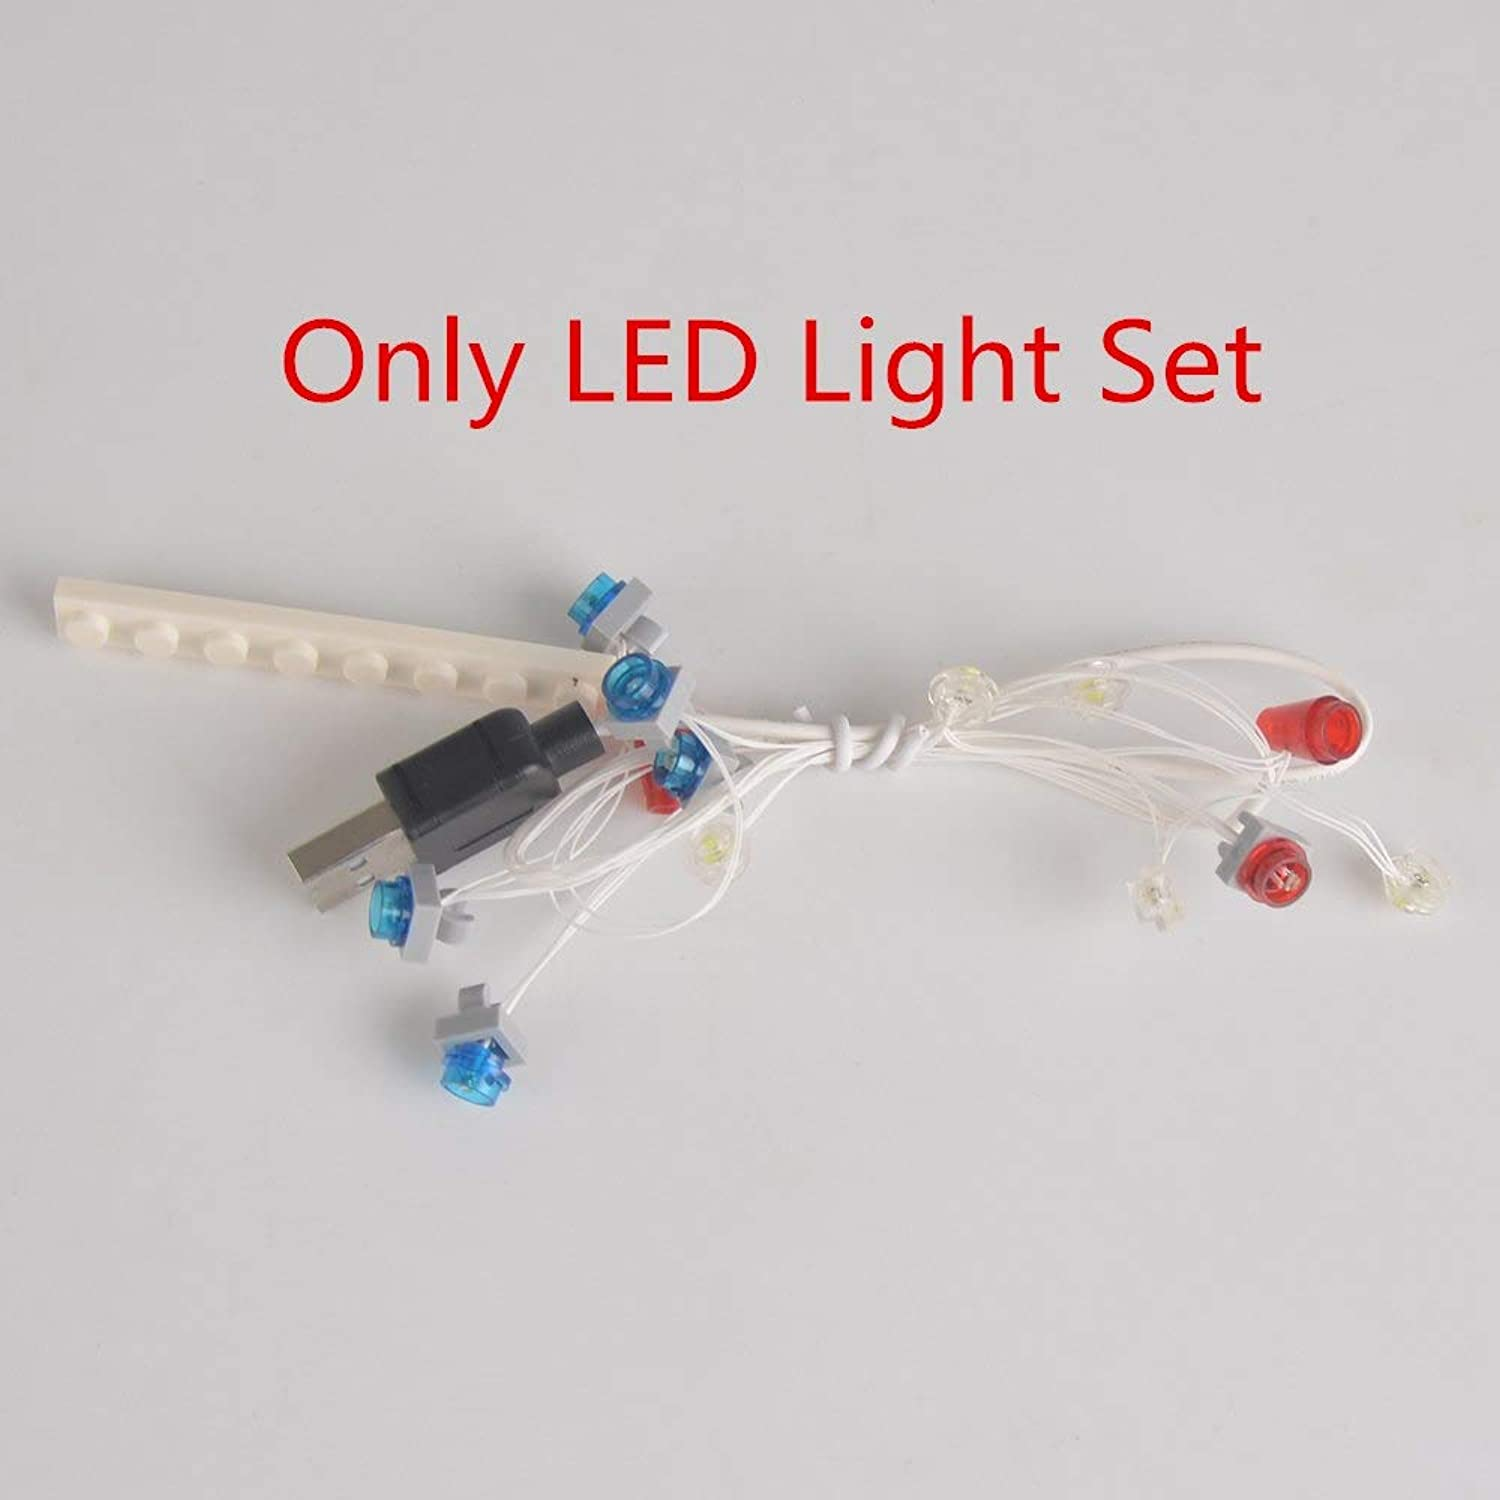 Generic Joy MAGS LED Light Up Kit Kit for Ghostbusters Ecto1 Light Set Compatible with 21108(NOT Include Model) LED Light Set